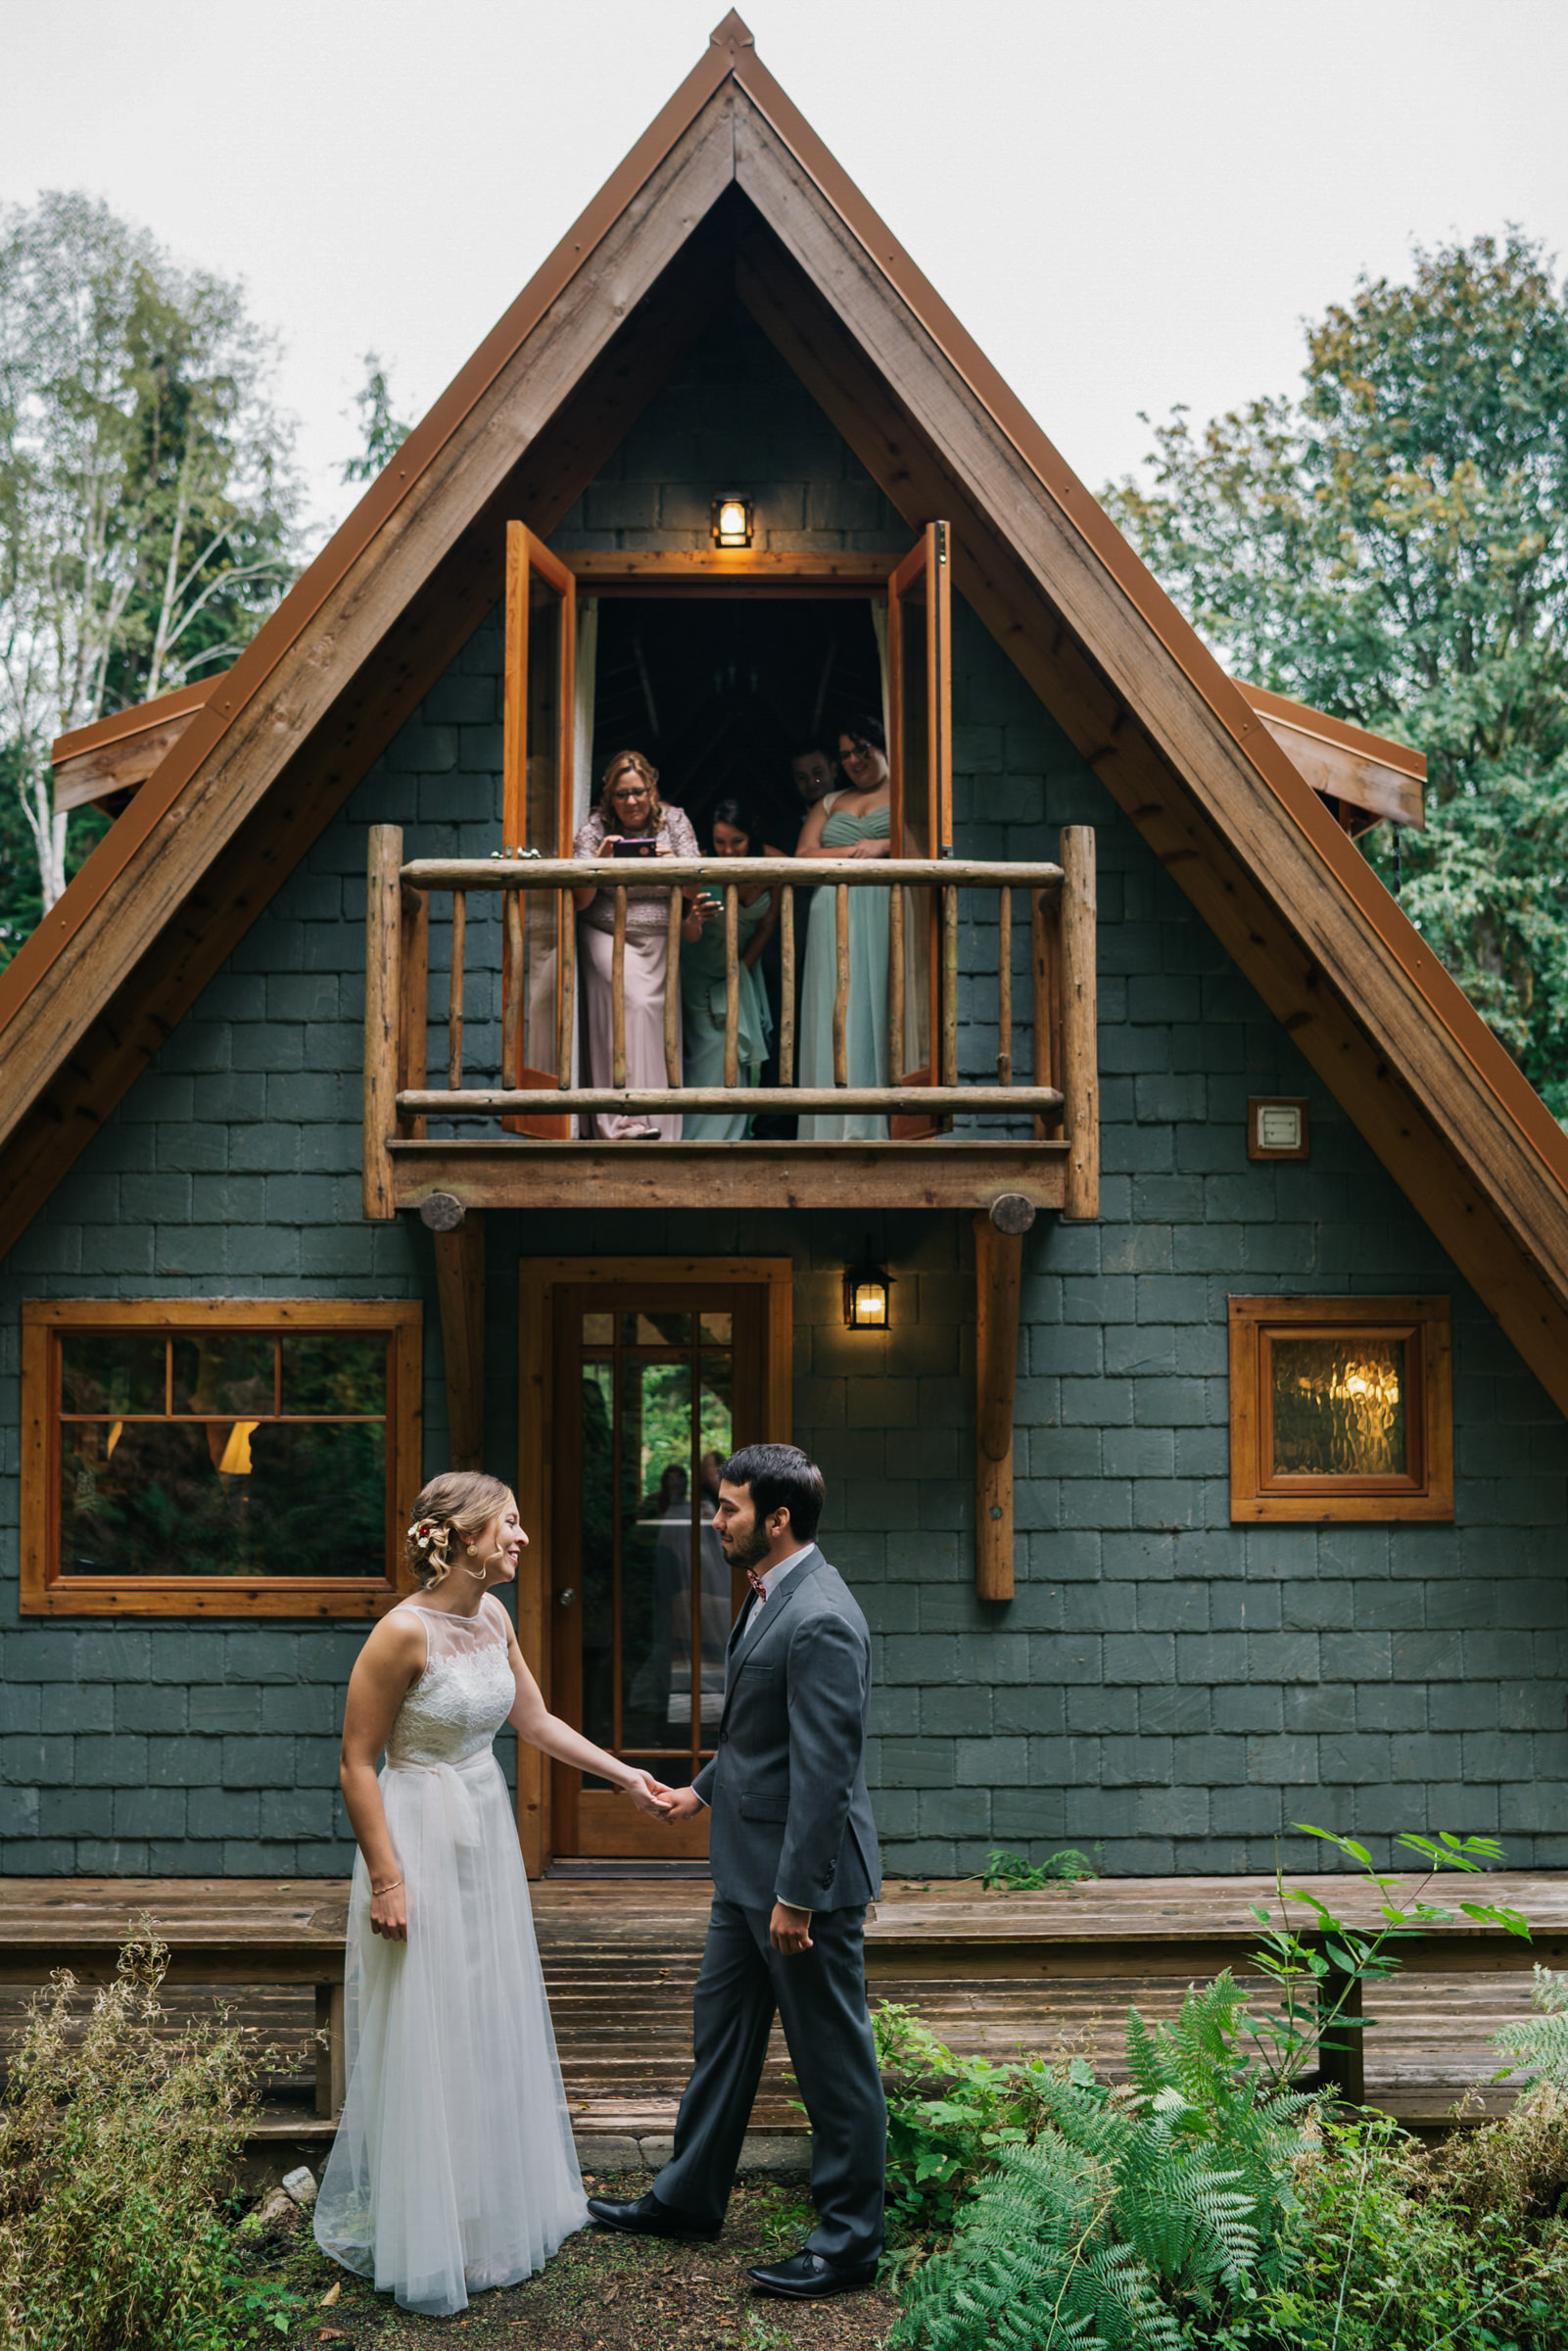 Couple at rustic cabin w bridesmaids - photo by Sasha Reiko Photography